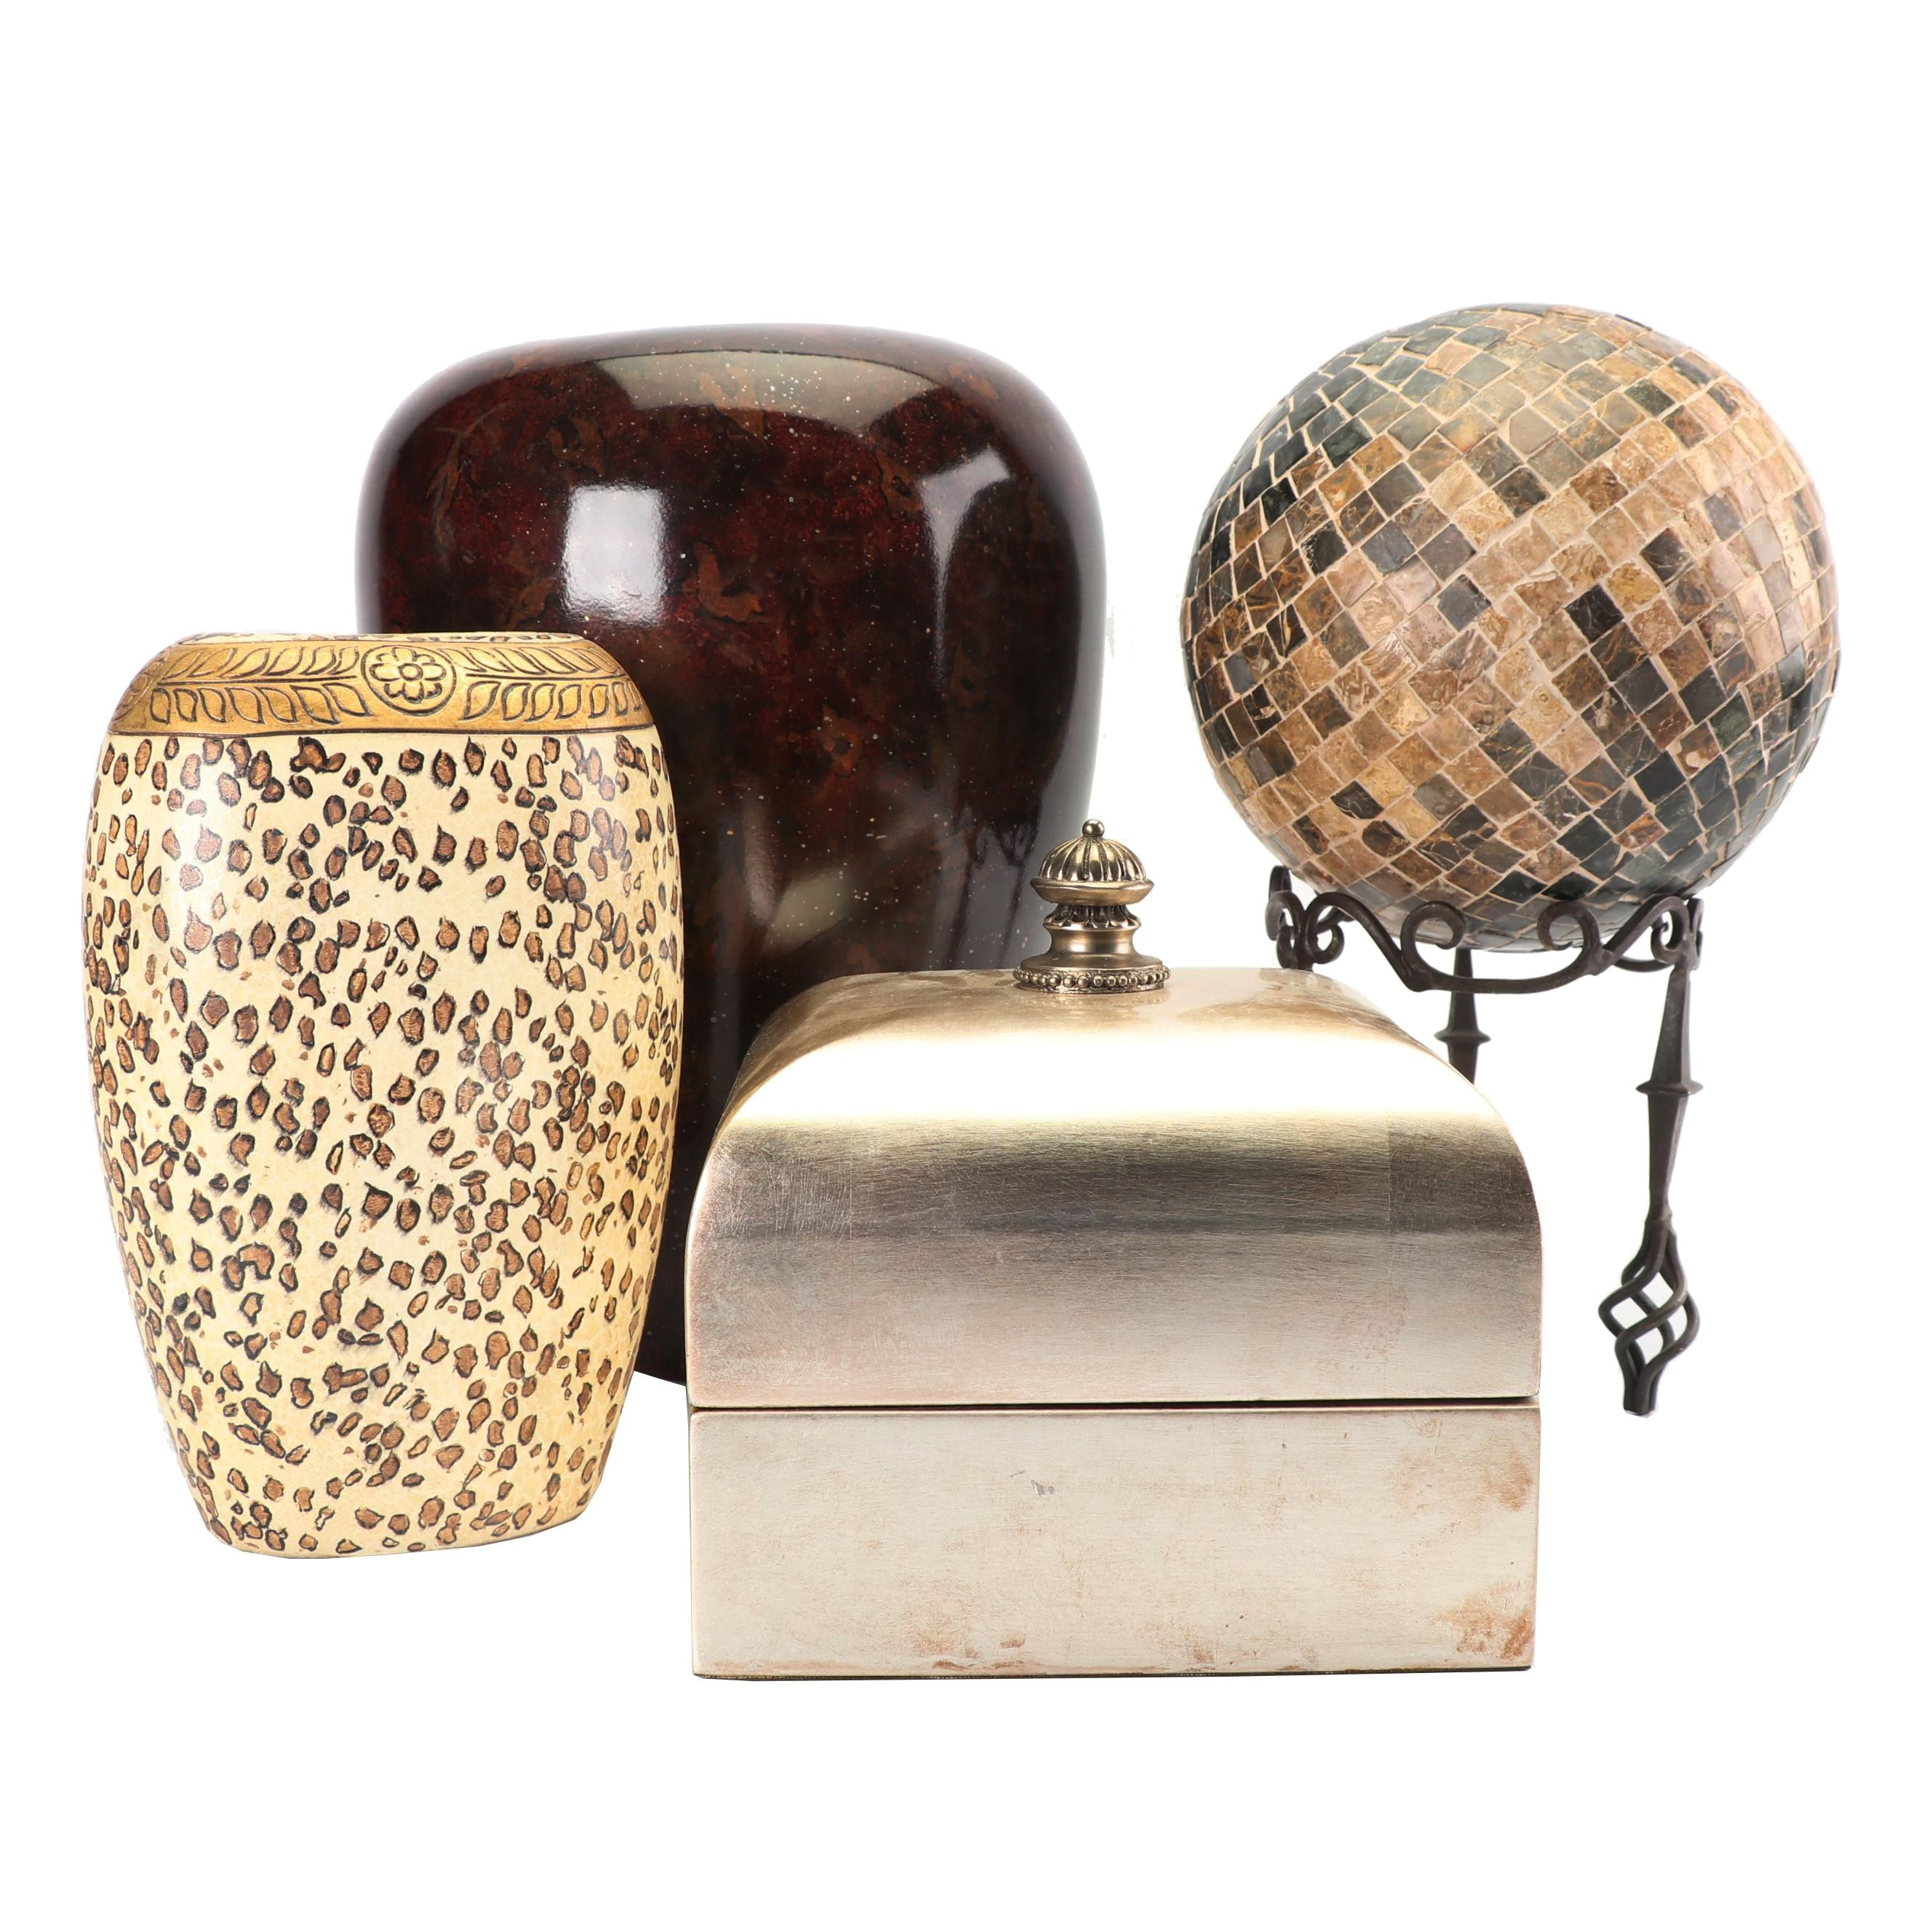 Maitland Smith Decorative Box with Vases and Mosaic Orb